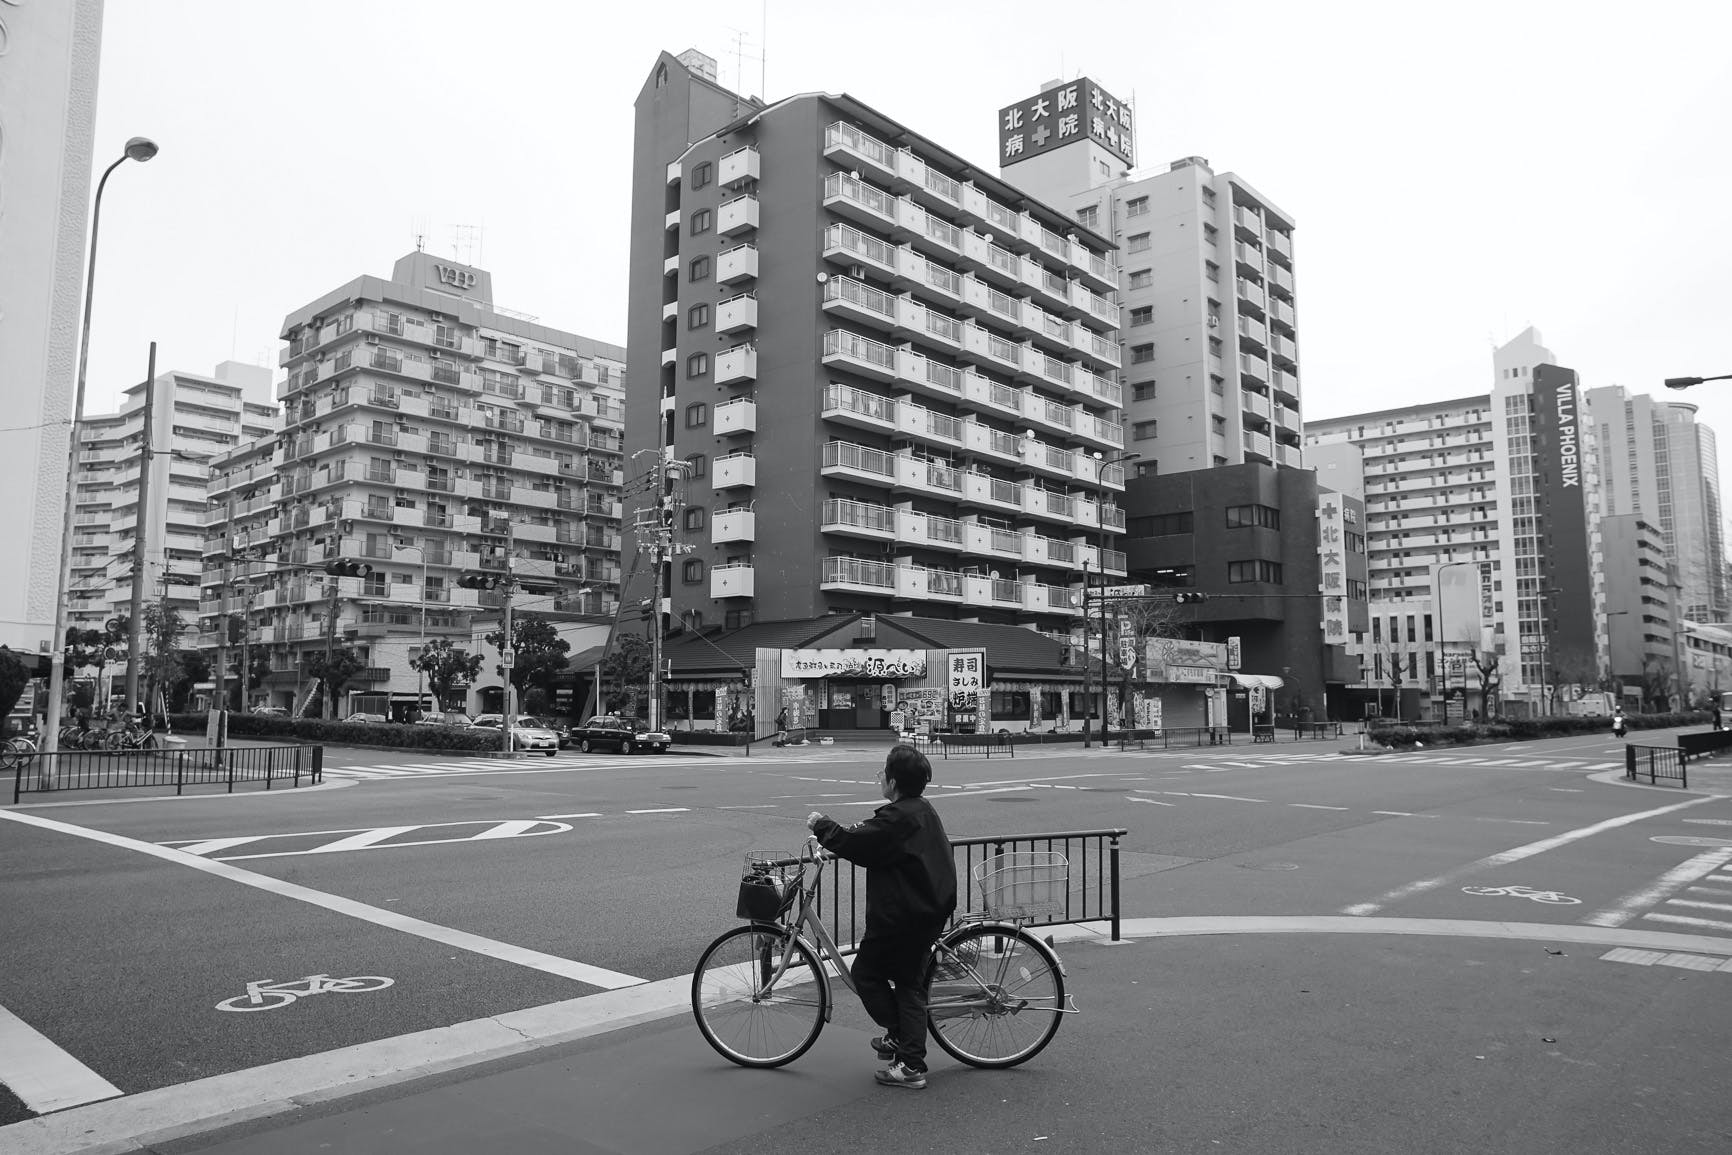 Free stock photo of bicycle, black and white, buildings, city life